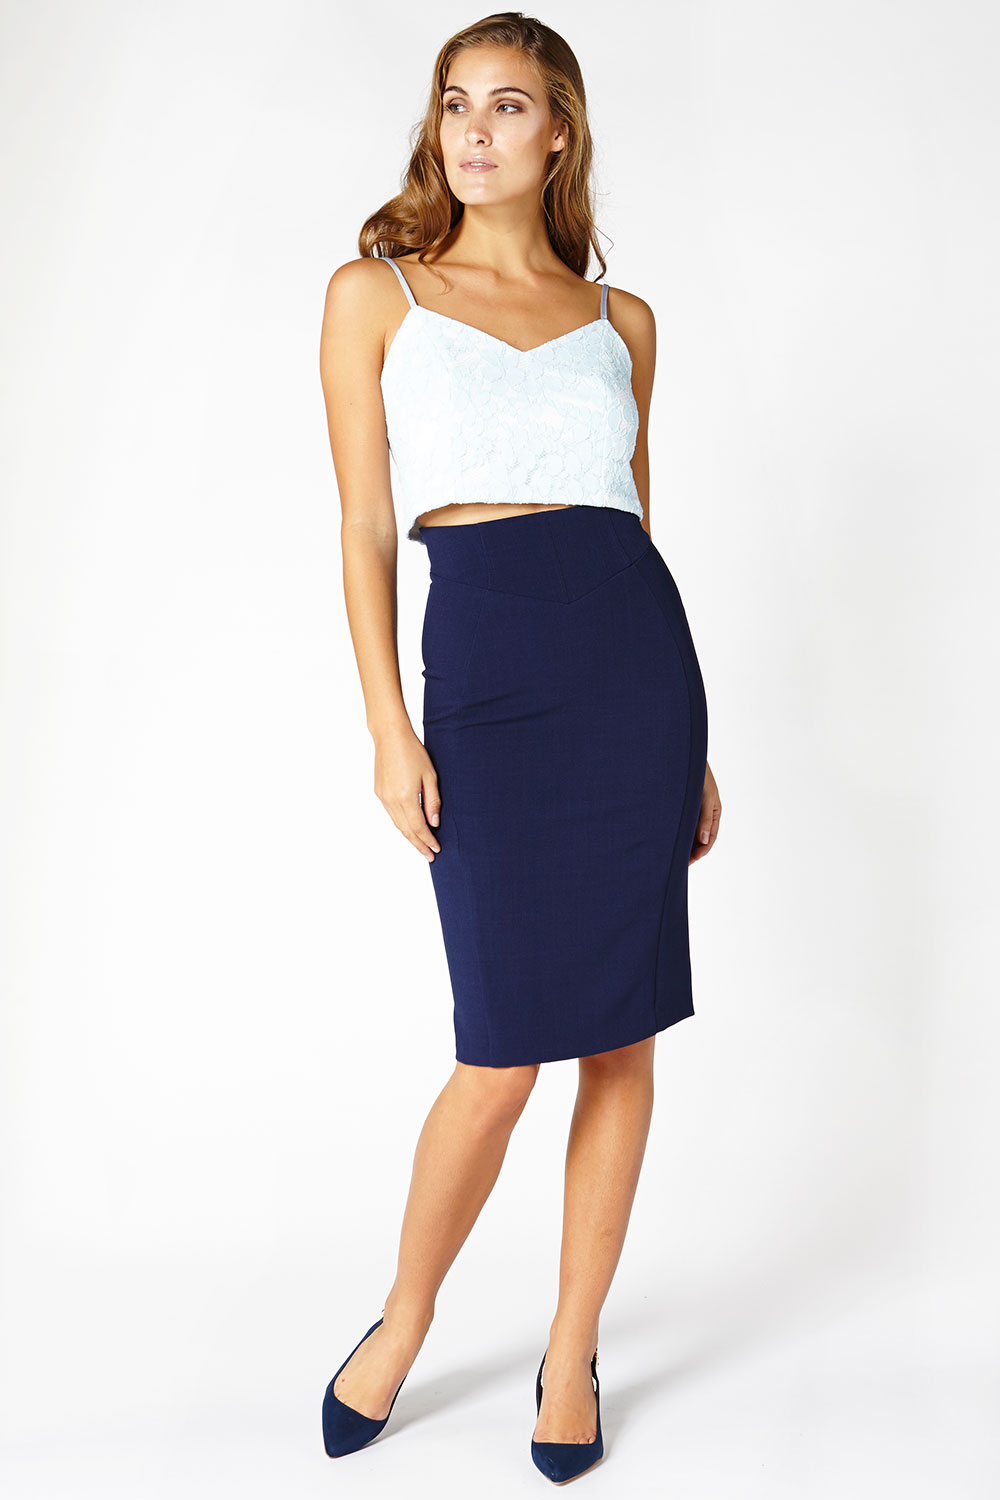 Hybrid Fashion 1198 Beline High Waisted Skirt